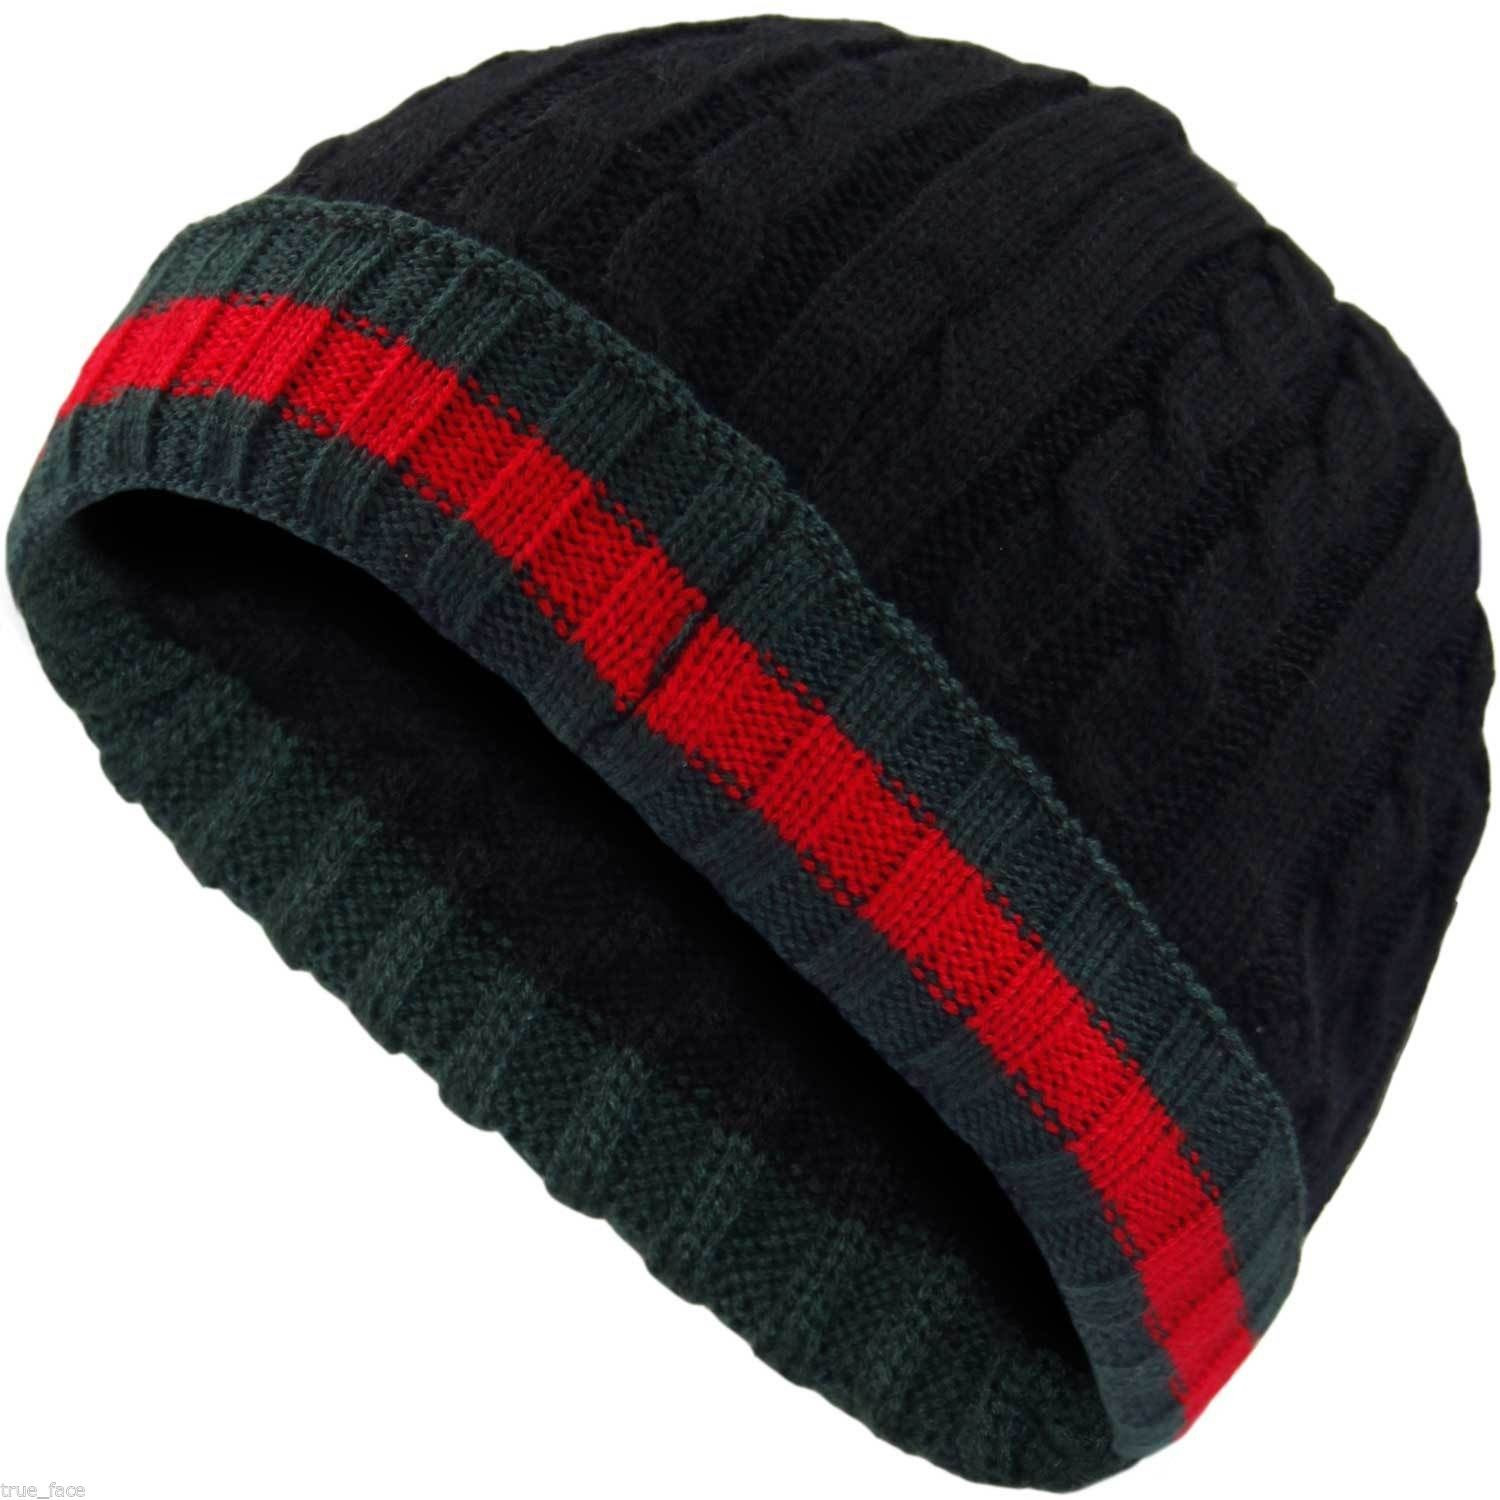 Mens Woolly Winter Beanie Uni Knitted Cap Hat